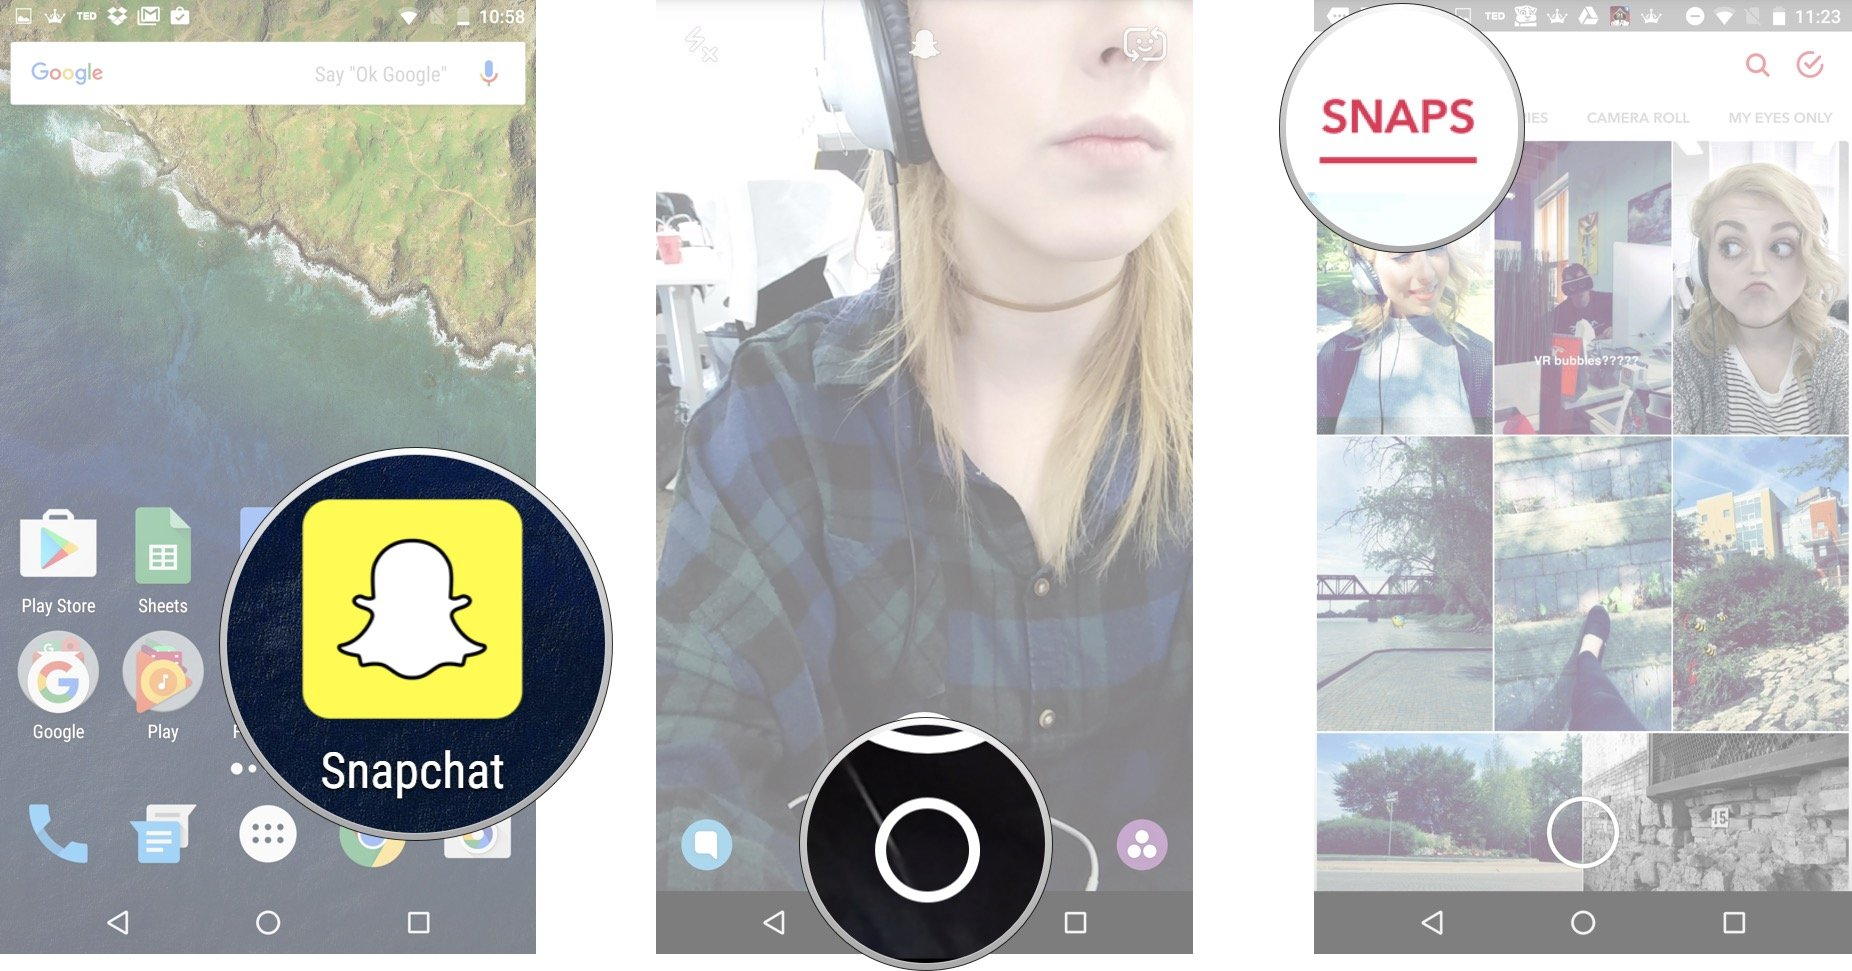 Launch Snapchat from your home screen and tap on the smaller white circle underneath the shutter button to access Memories. Tap the Snaps tab.